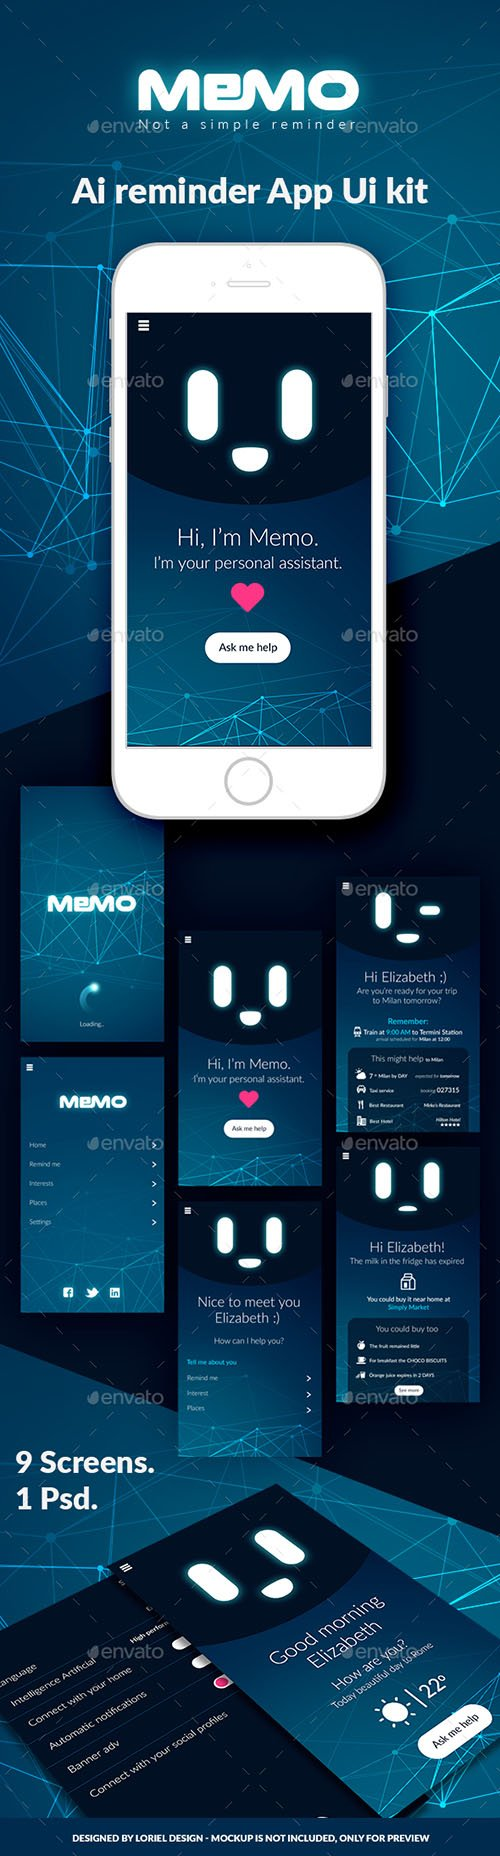 Memo - Mobile AI Reminder App Ui kit 21297734